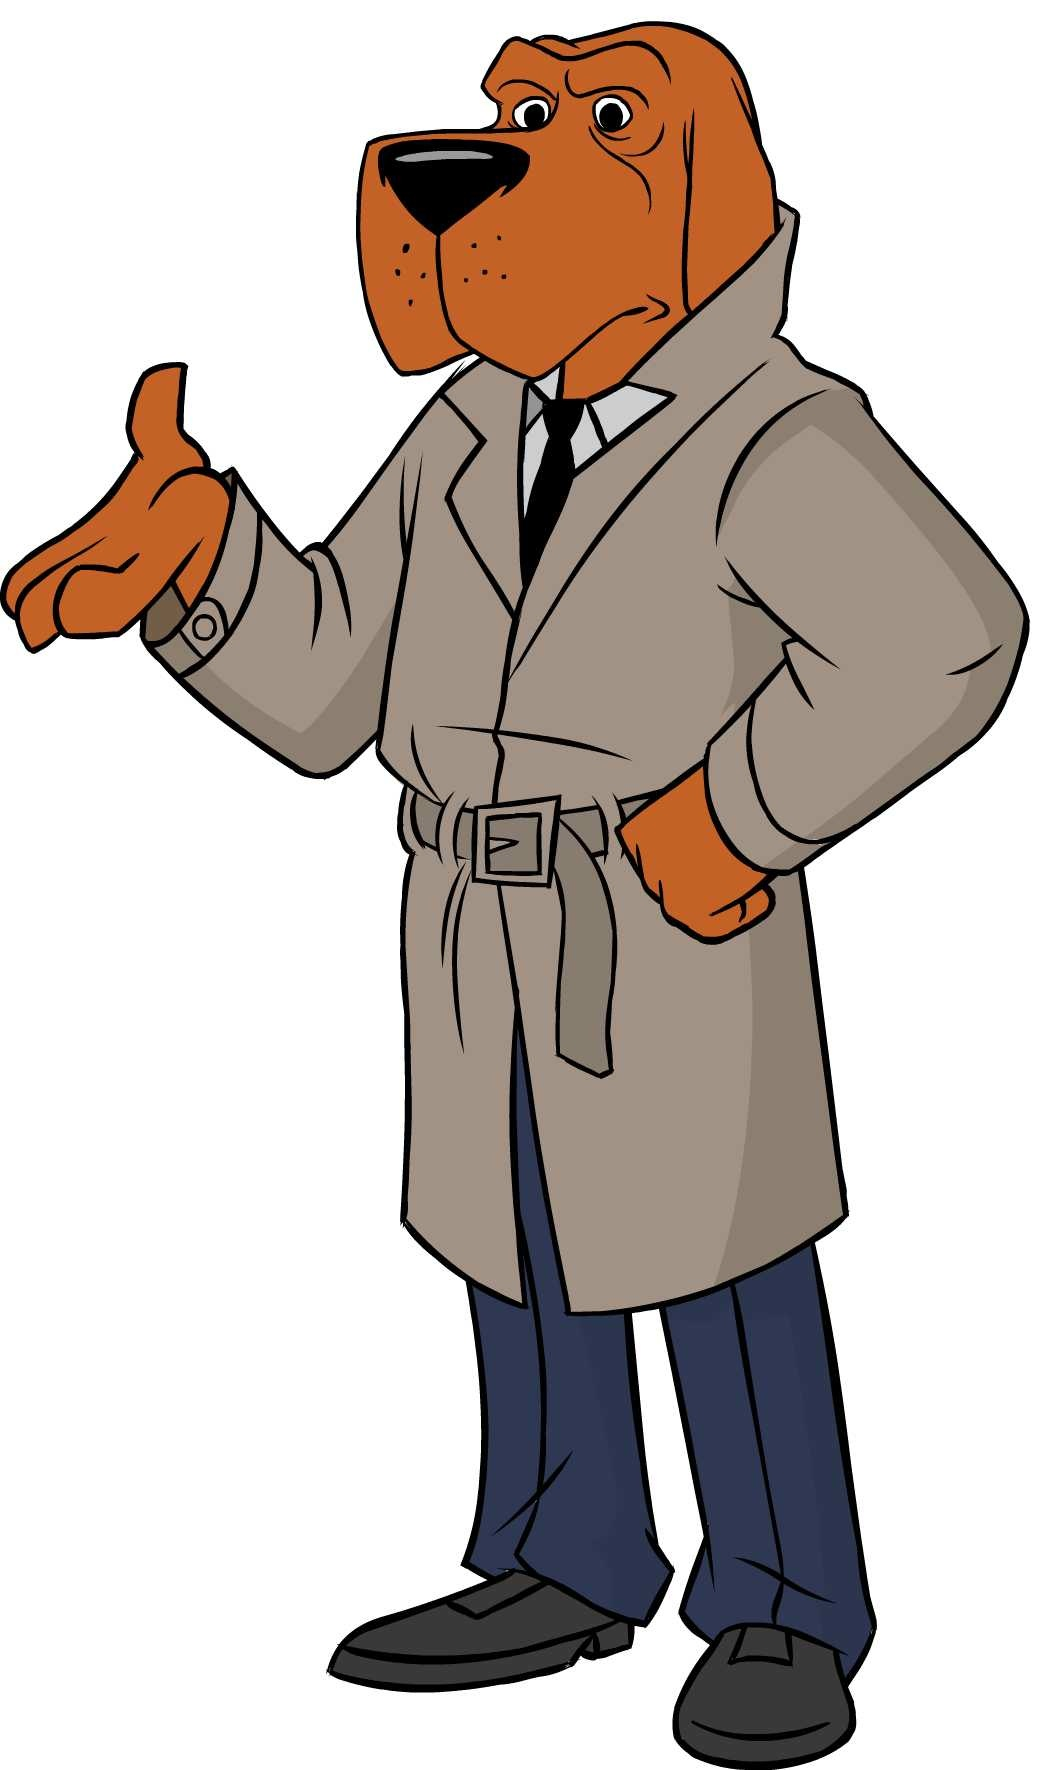 Mcgruff The Crime Dog Heroes Wiki Fandom Powered By Wikia